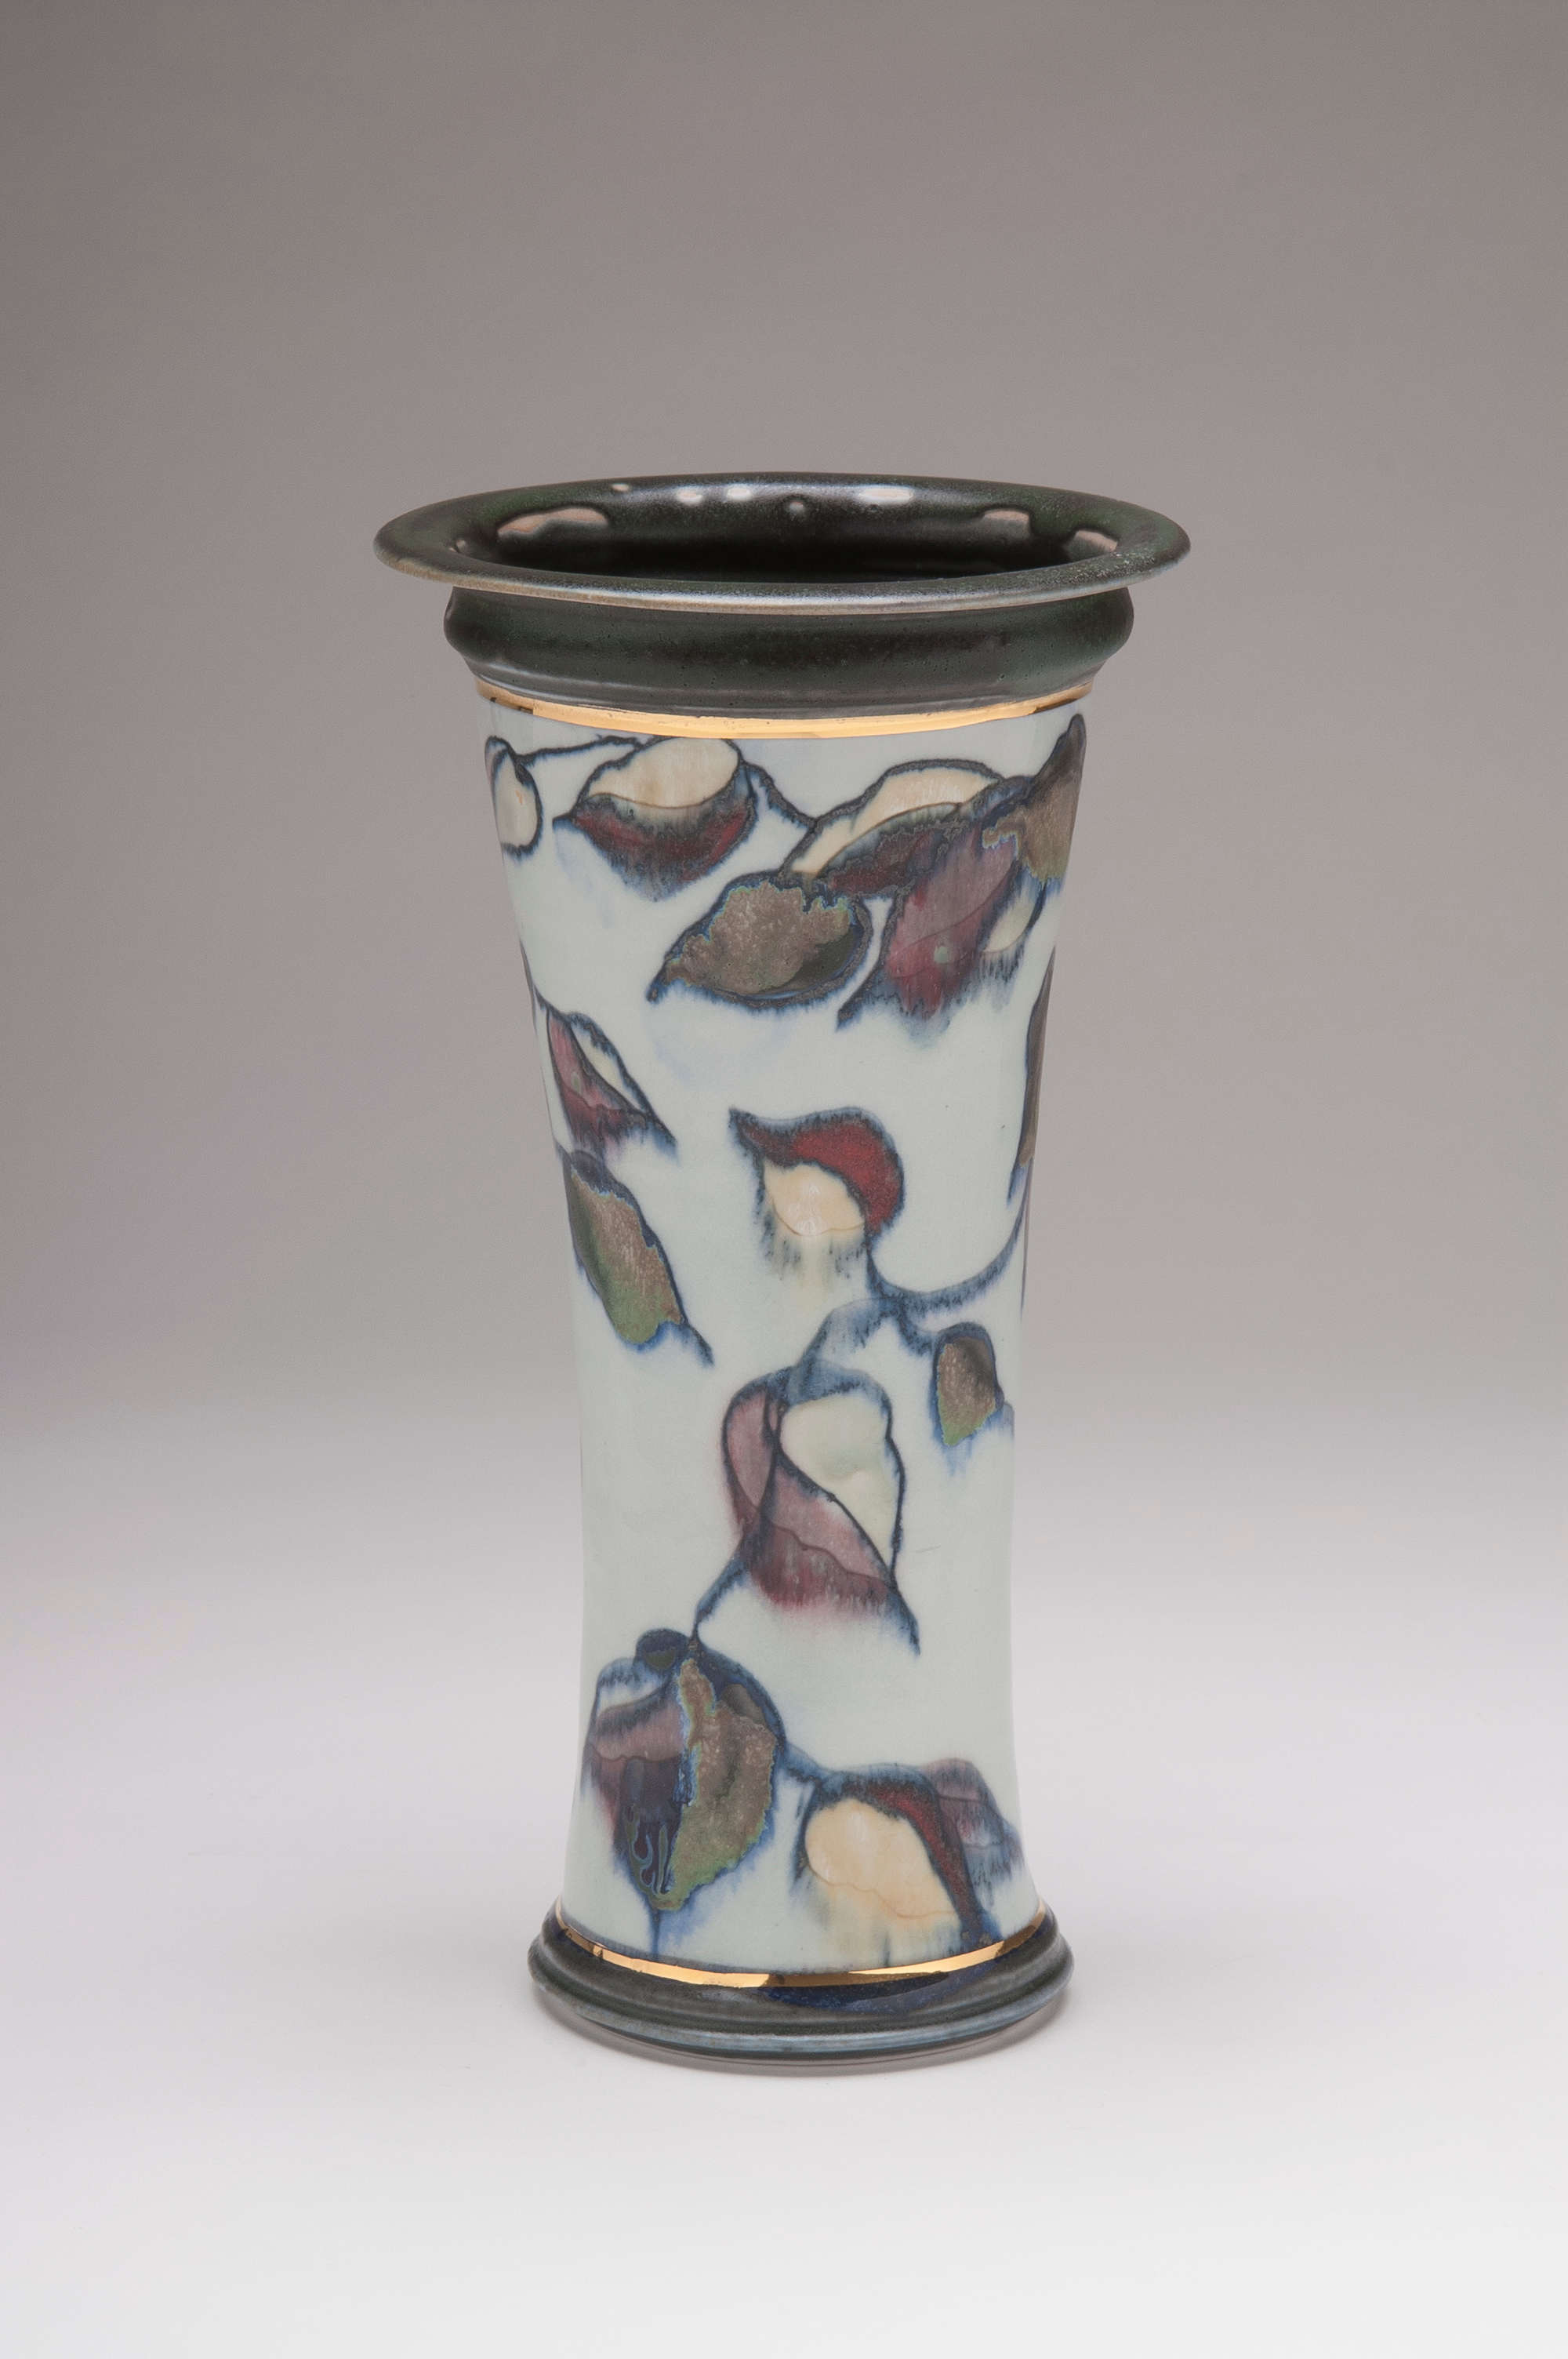 Valerie Metcalfe. Forest vase. 2018, Porcelain and Gold Lustre. Carved Mishima design with painted glazes, underglazes and wax. 38.1 cm high.